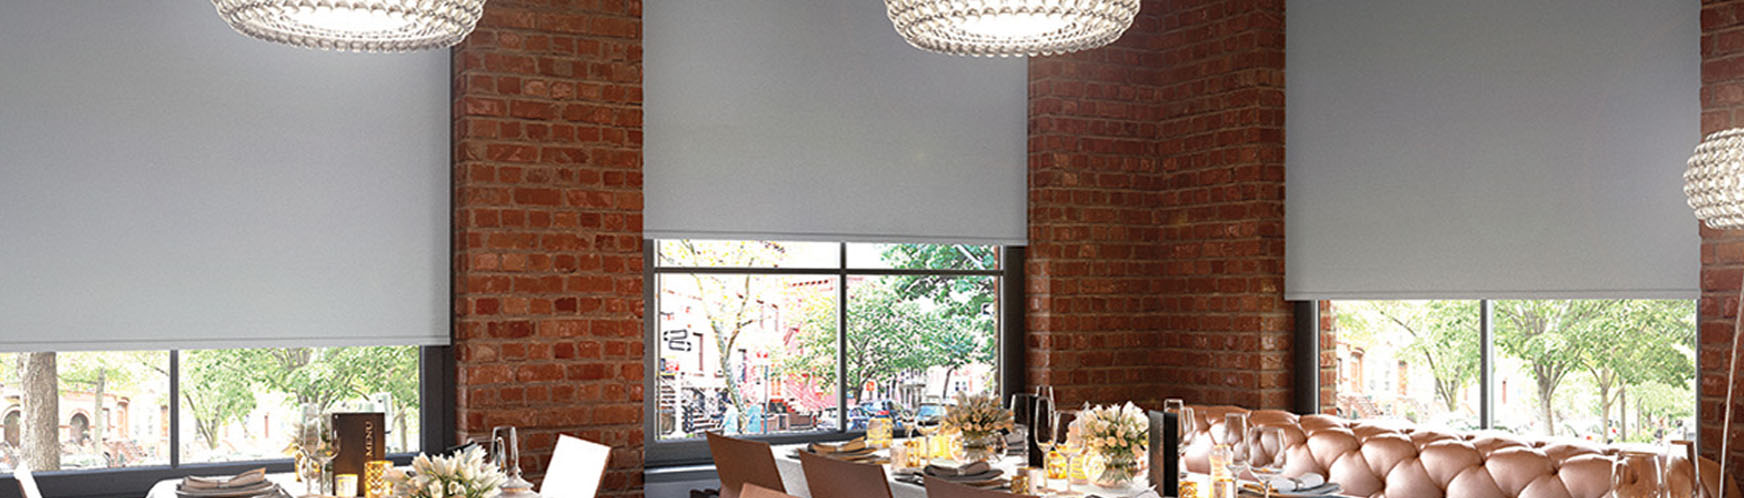 Blinds for restaurants and bars